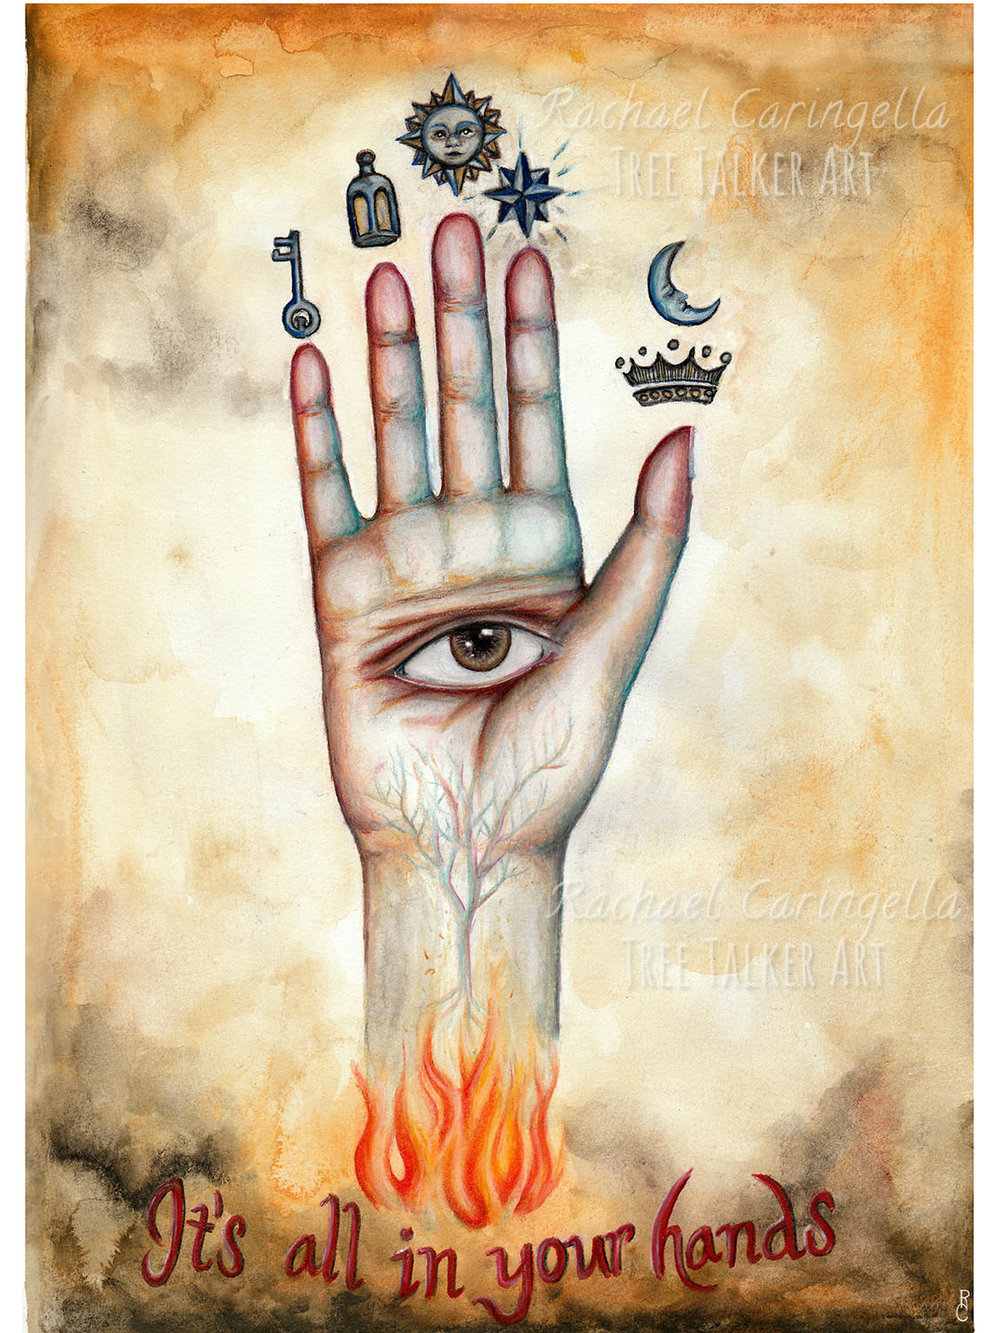 Alchemey Hand of the Philosophers Mixed Media Watercolor Painting by Rachael Caringella | Tree Talker Art